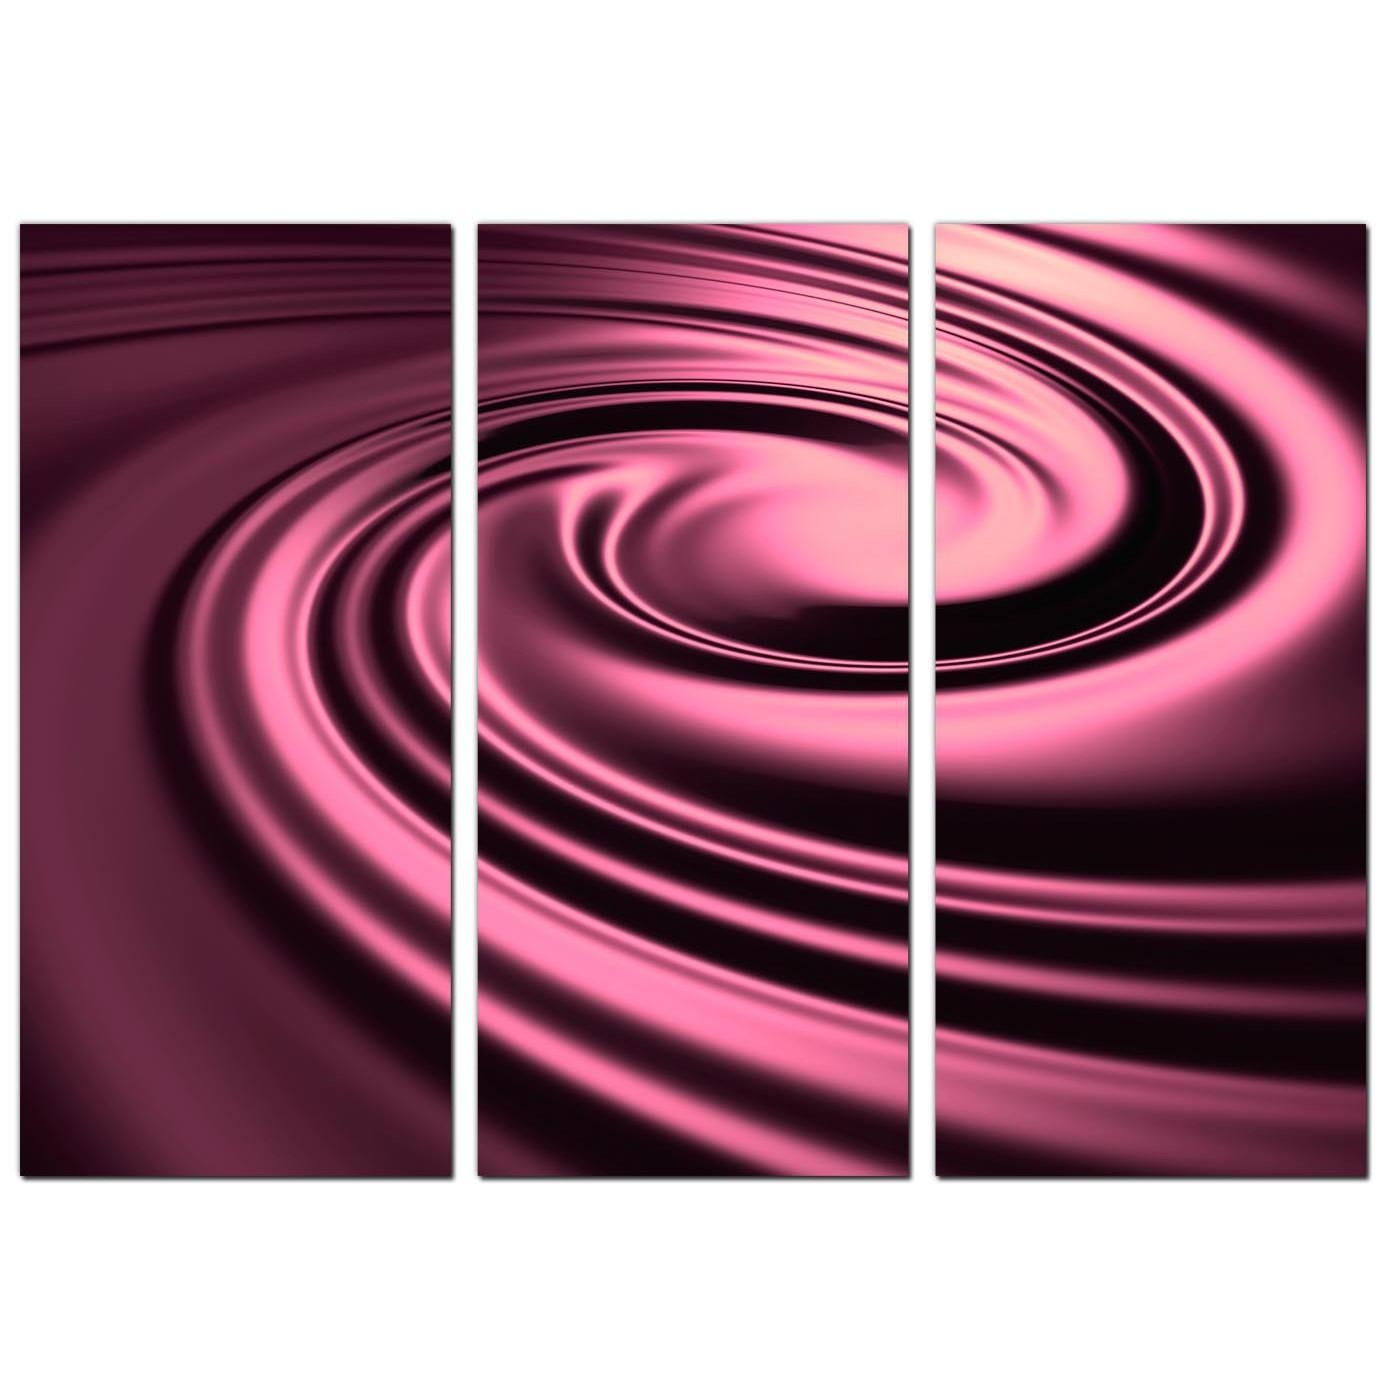 Cheap Abstract Canvas Wall Art 3 Part In Plum With Regard To Plum Wall Art (Image 7 of 20)